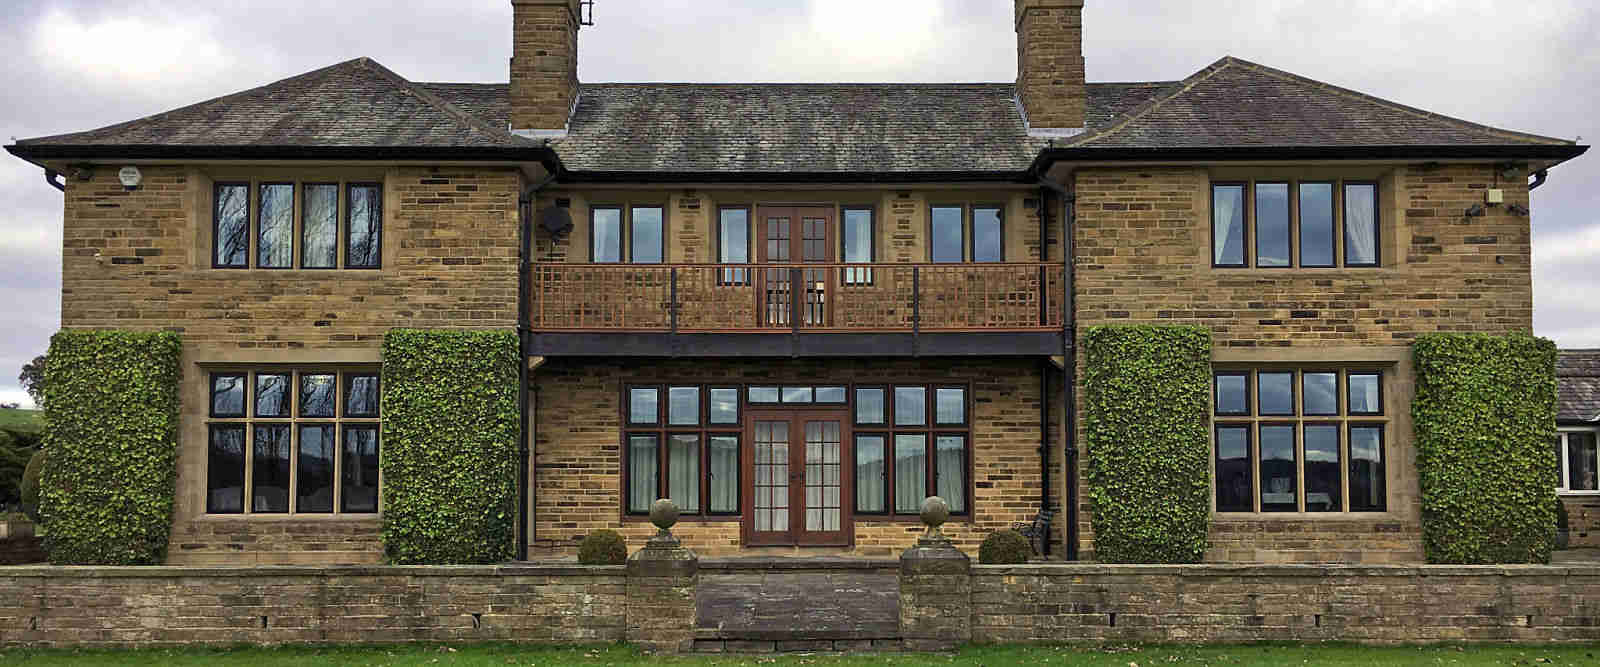 Aluminium heritage windows installed in North Yorkshire